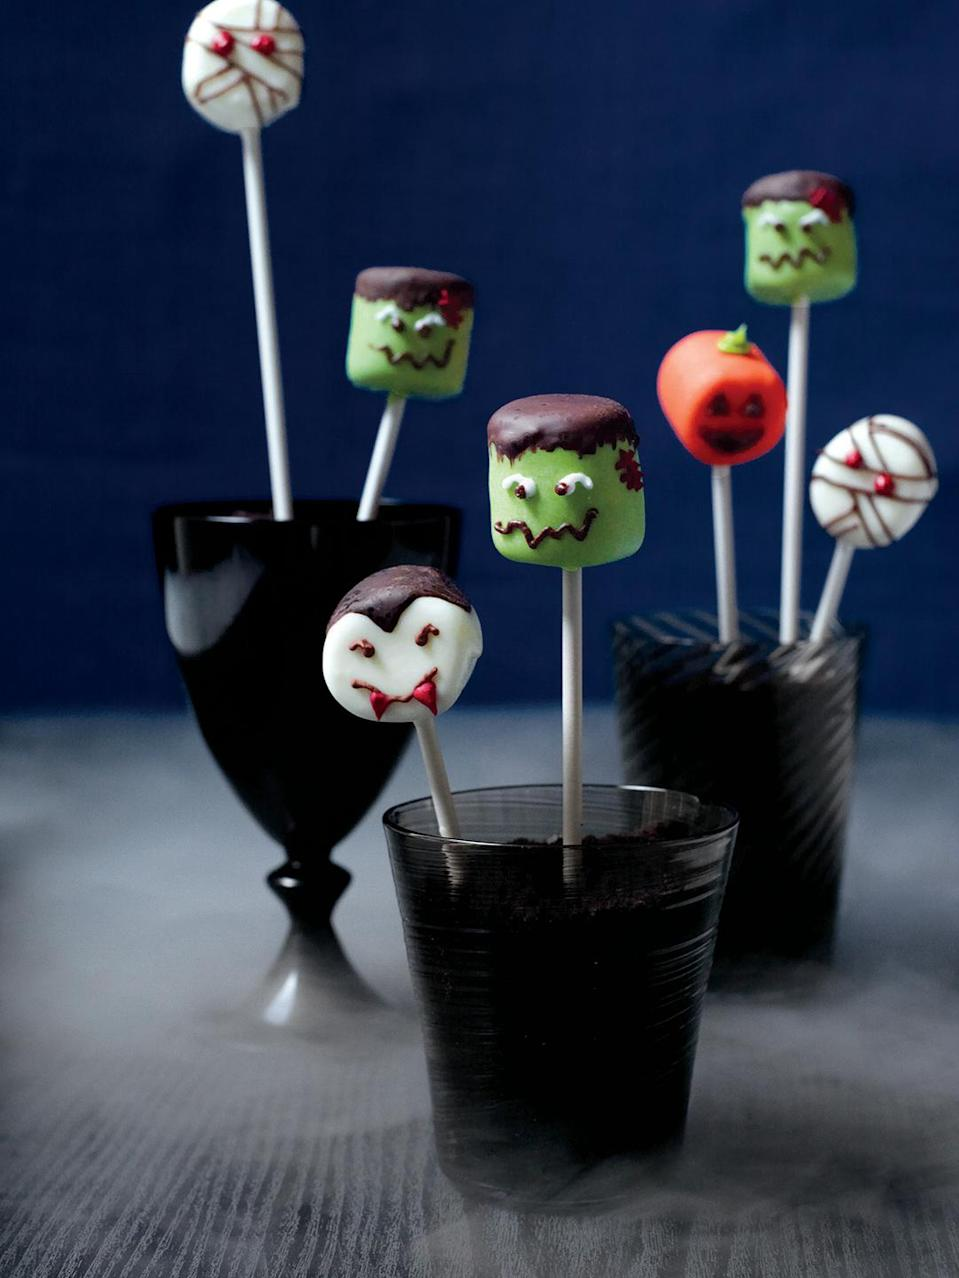 """<p>A few basic ingredients is all it takes to make these cute little monsters. </p><p><em><a href=""""https://www.womansday.com/food-recipes/food-drinks/recipes/a11873/marshmallow-heads-recipe-123439/"""" rel=""""nofollow noopener"""" target=""""_blank"""" data-ylk=""""slk:Get the Marshmallow Heads recipe."""" class=""""link rapid-noclick-resp"""">Get the Marshmallow Heads recipe. </a></em></p>"""